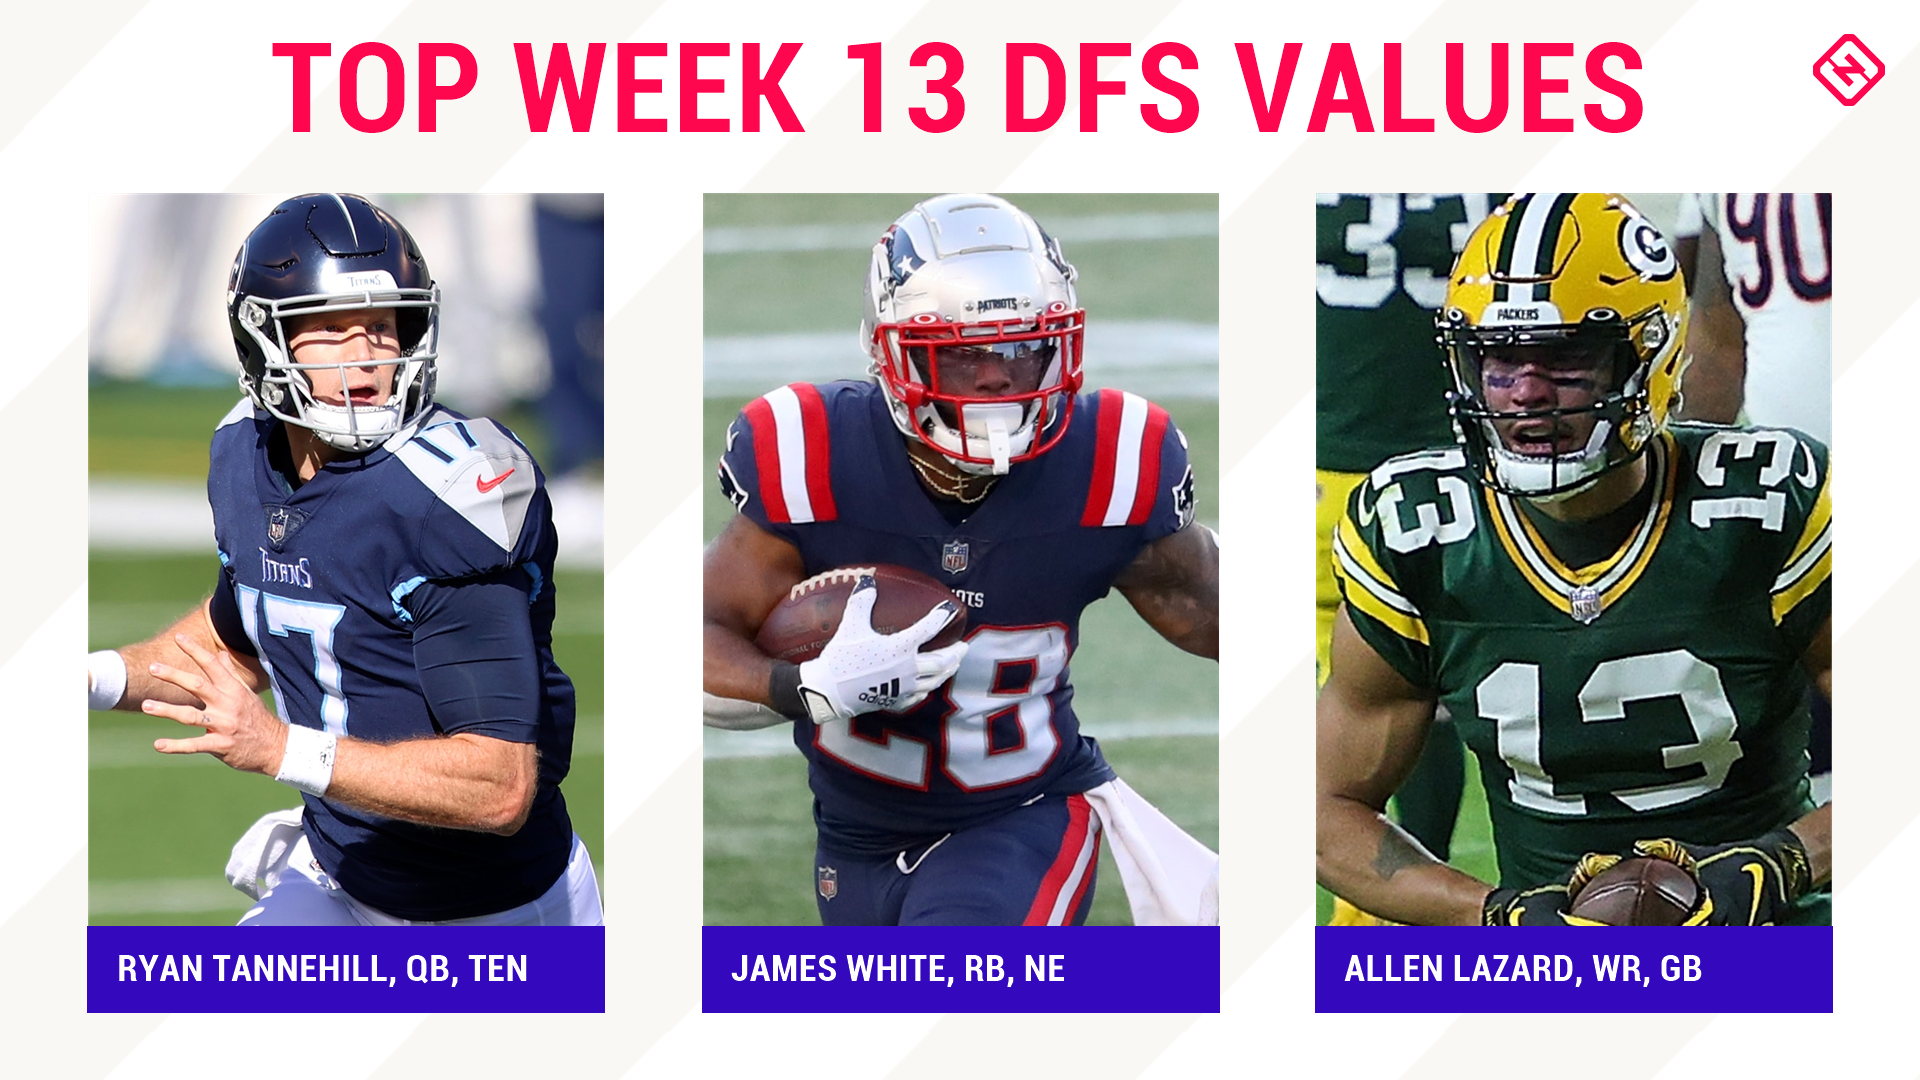 Week 13 NFL DFS Picks: Best value players, sleepers for DraftKings, FanDuel daily fantasy football lineups